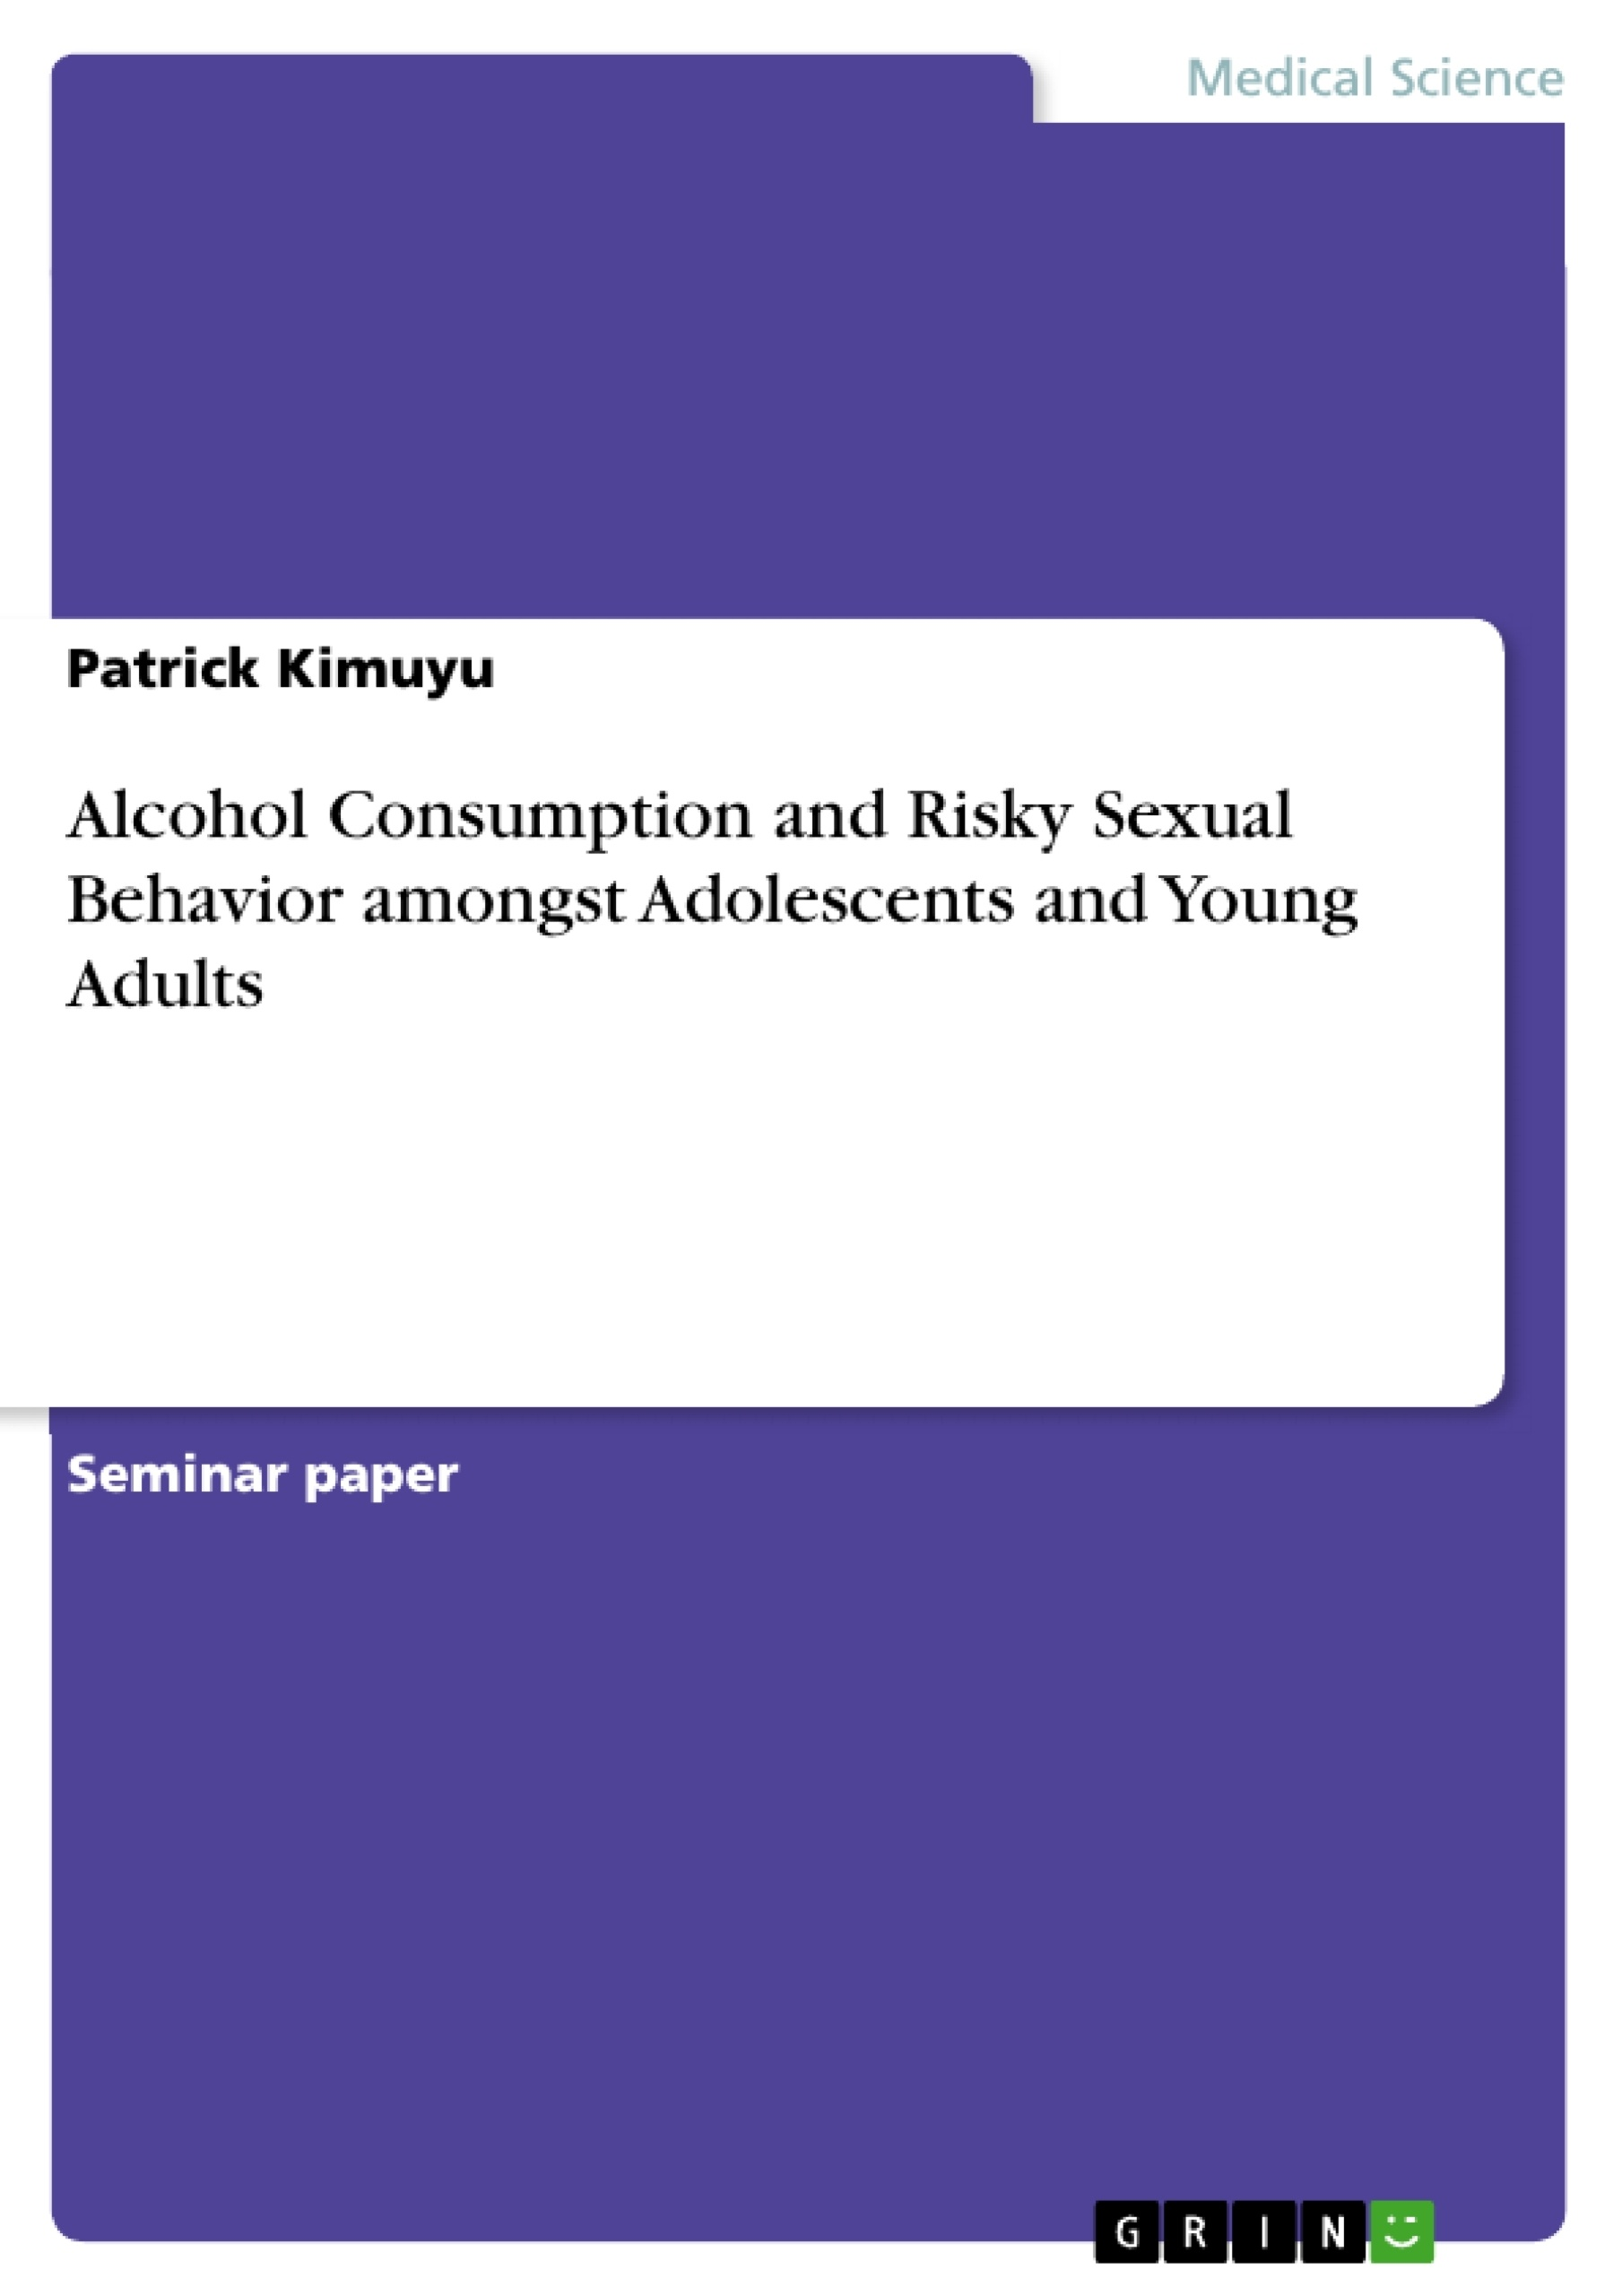 Title: Alcohol Consumption and Risky Sexual Behavior amongst Adolescents and Young Adults